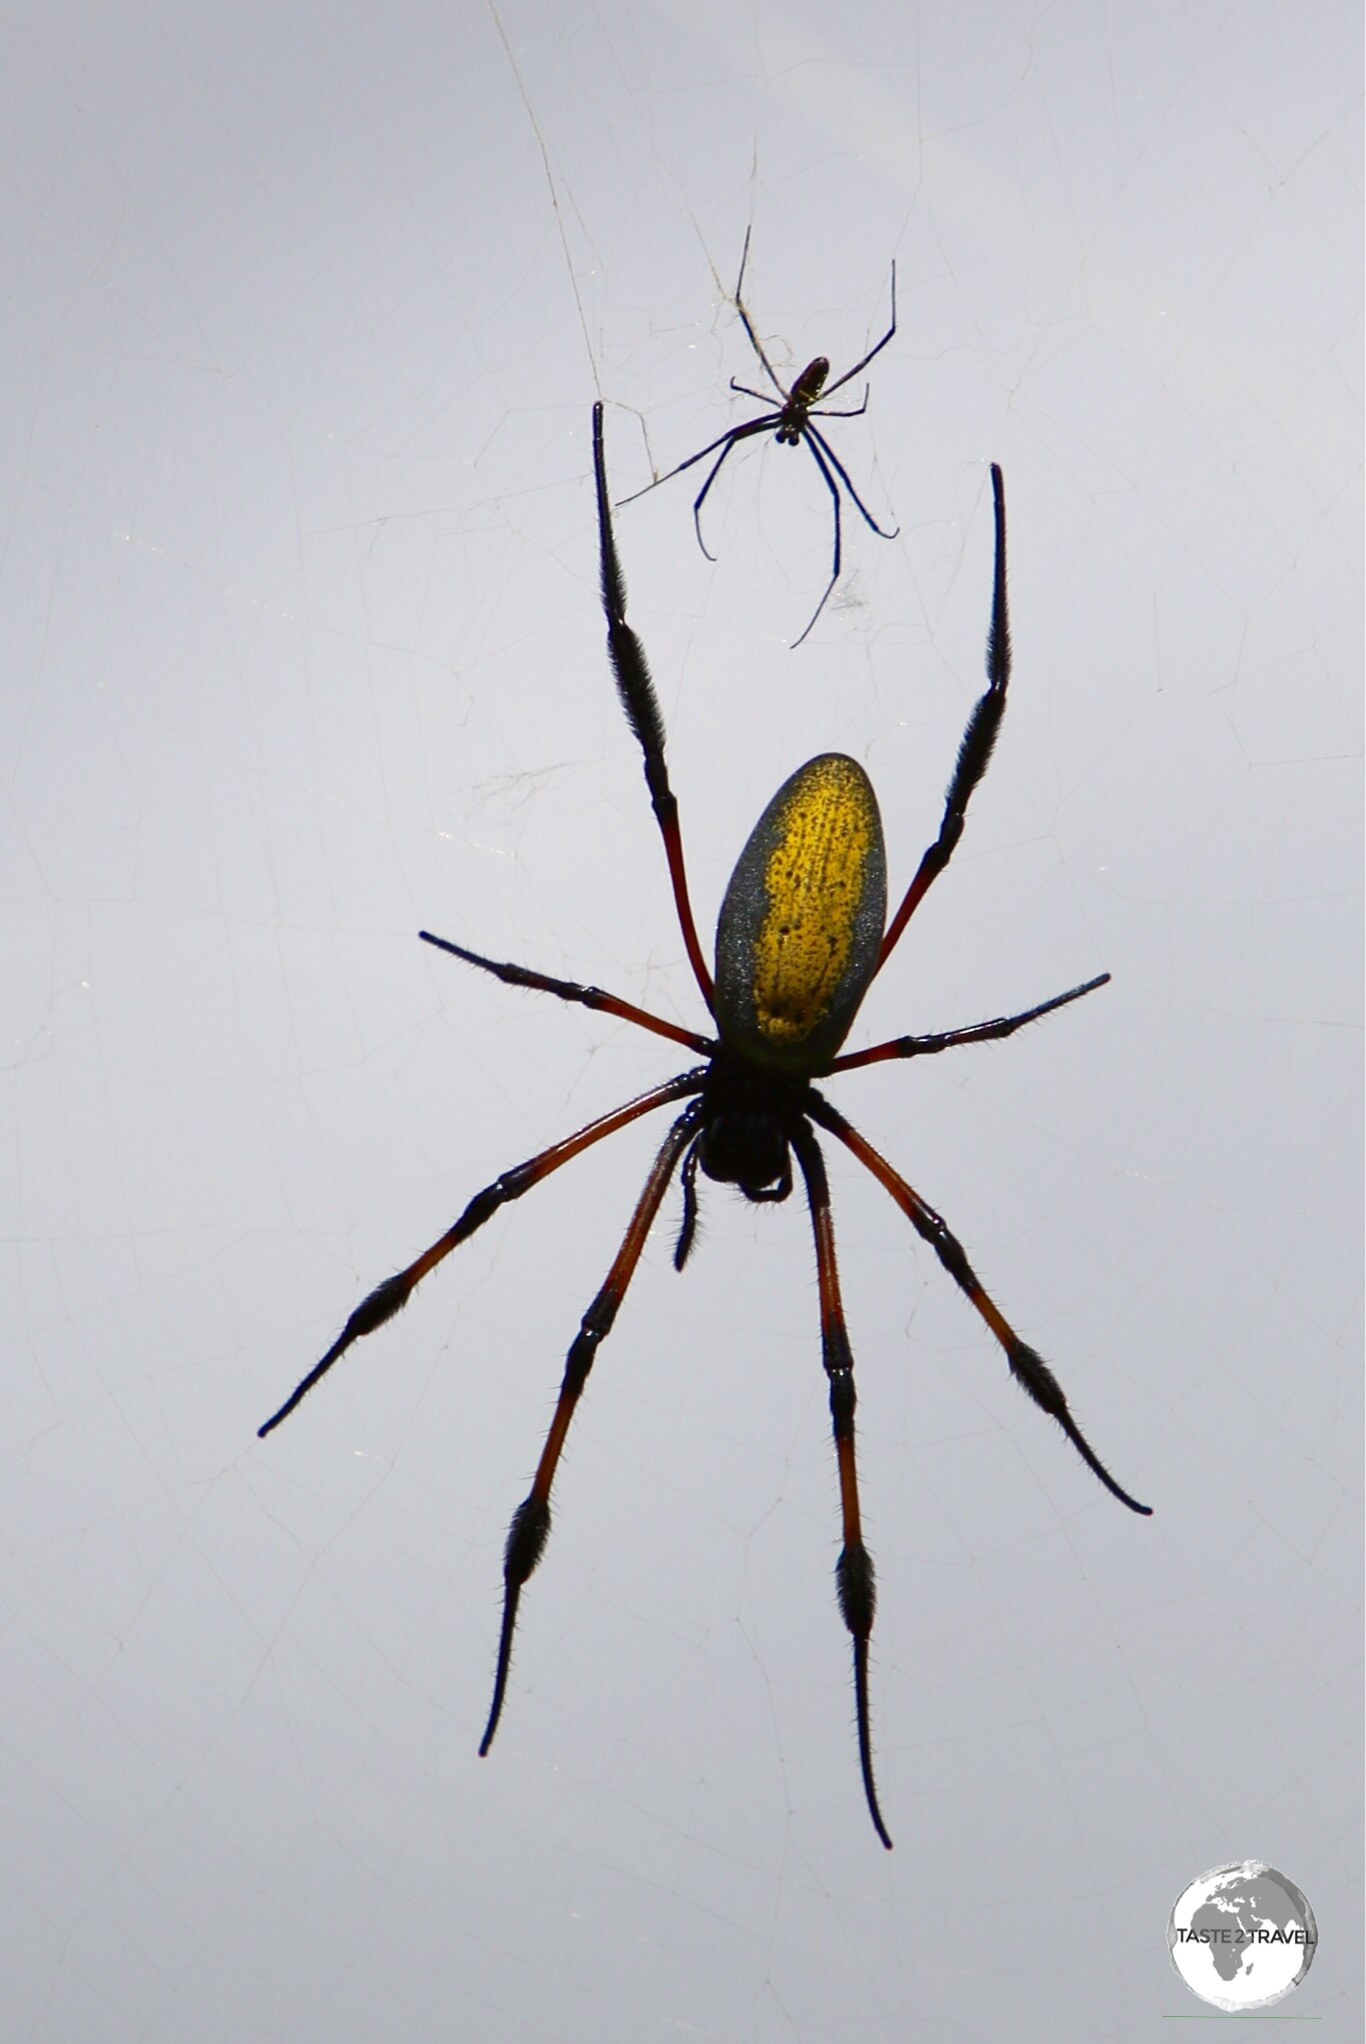 There are many more Nephila spiders in Hell-bourg than people. I kid you not!